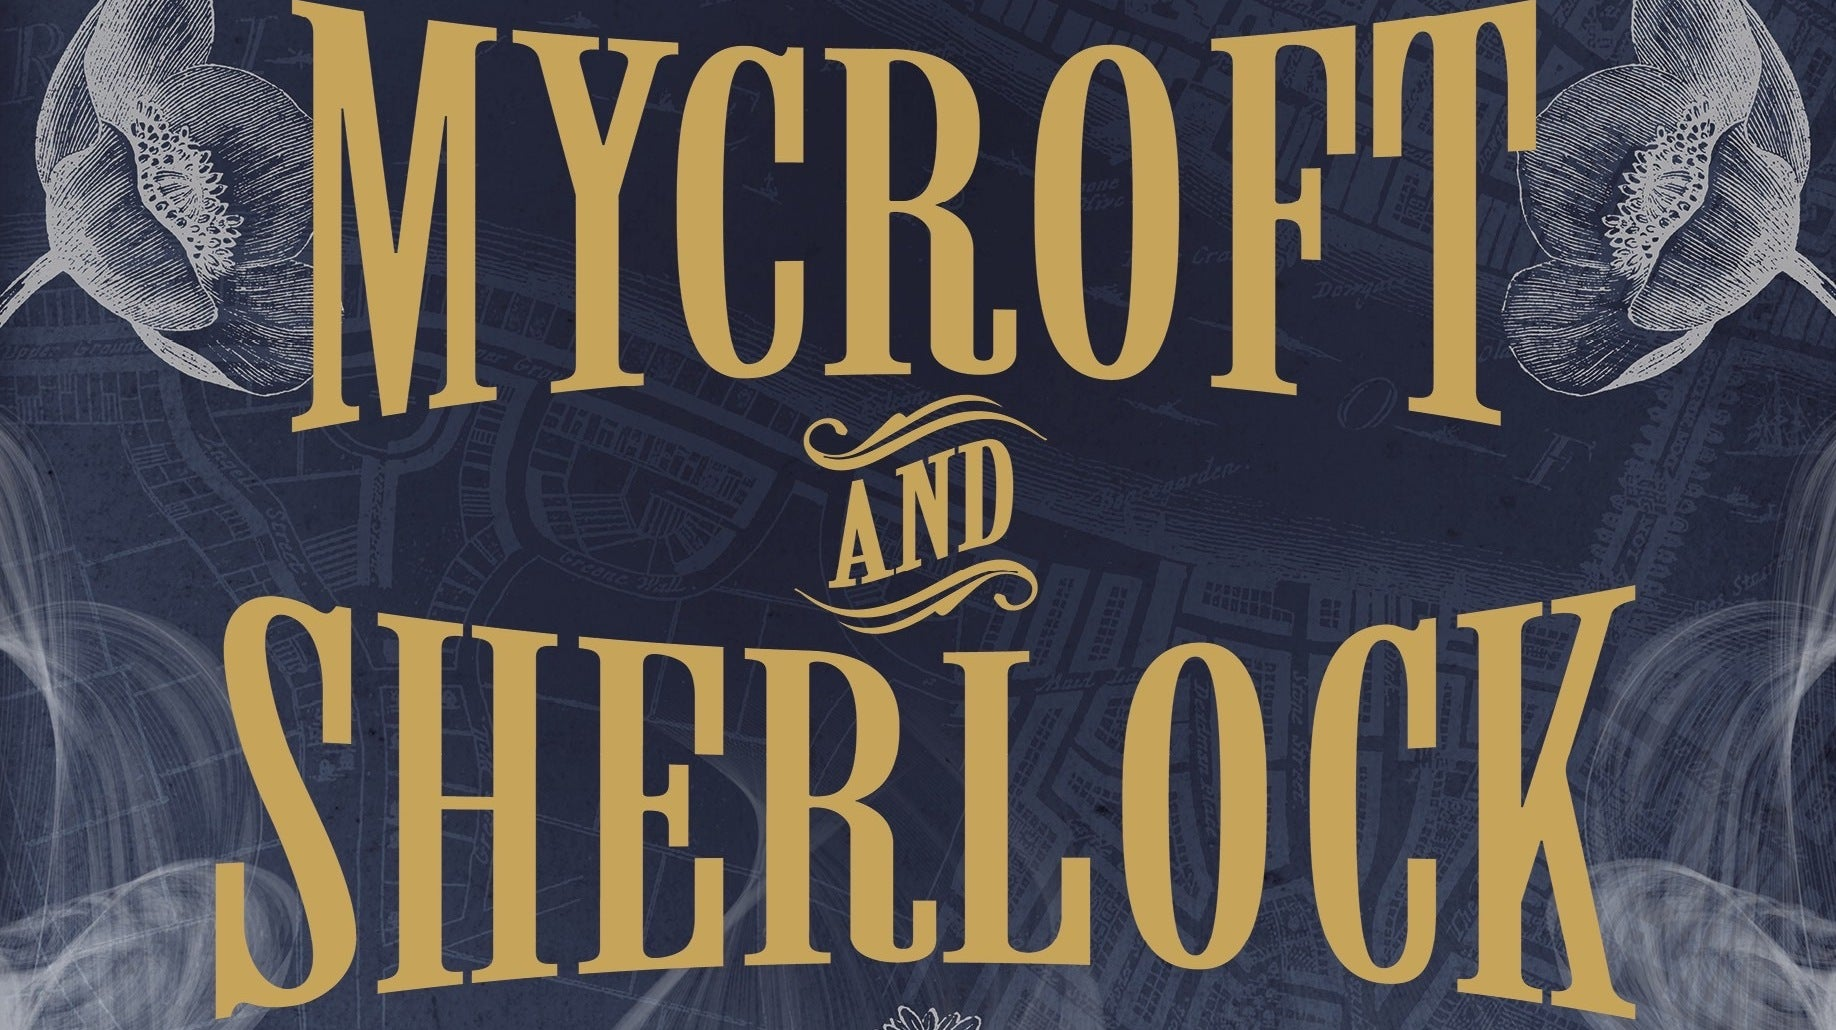 Brilliant Brothers Butt Heads In This Excerpt From Kareem Abdul-Jabbar's Mycroft And Sherlock